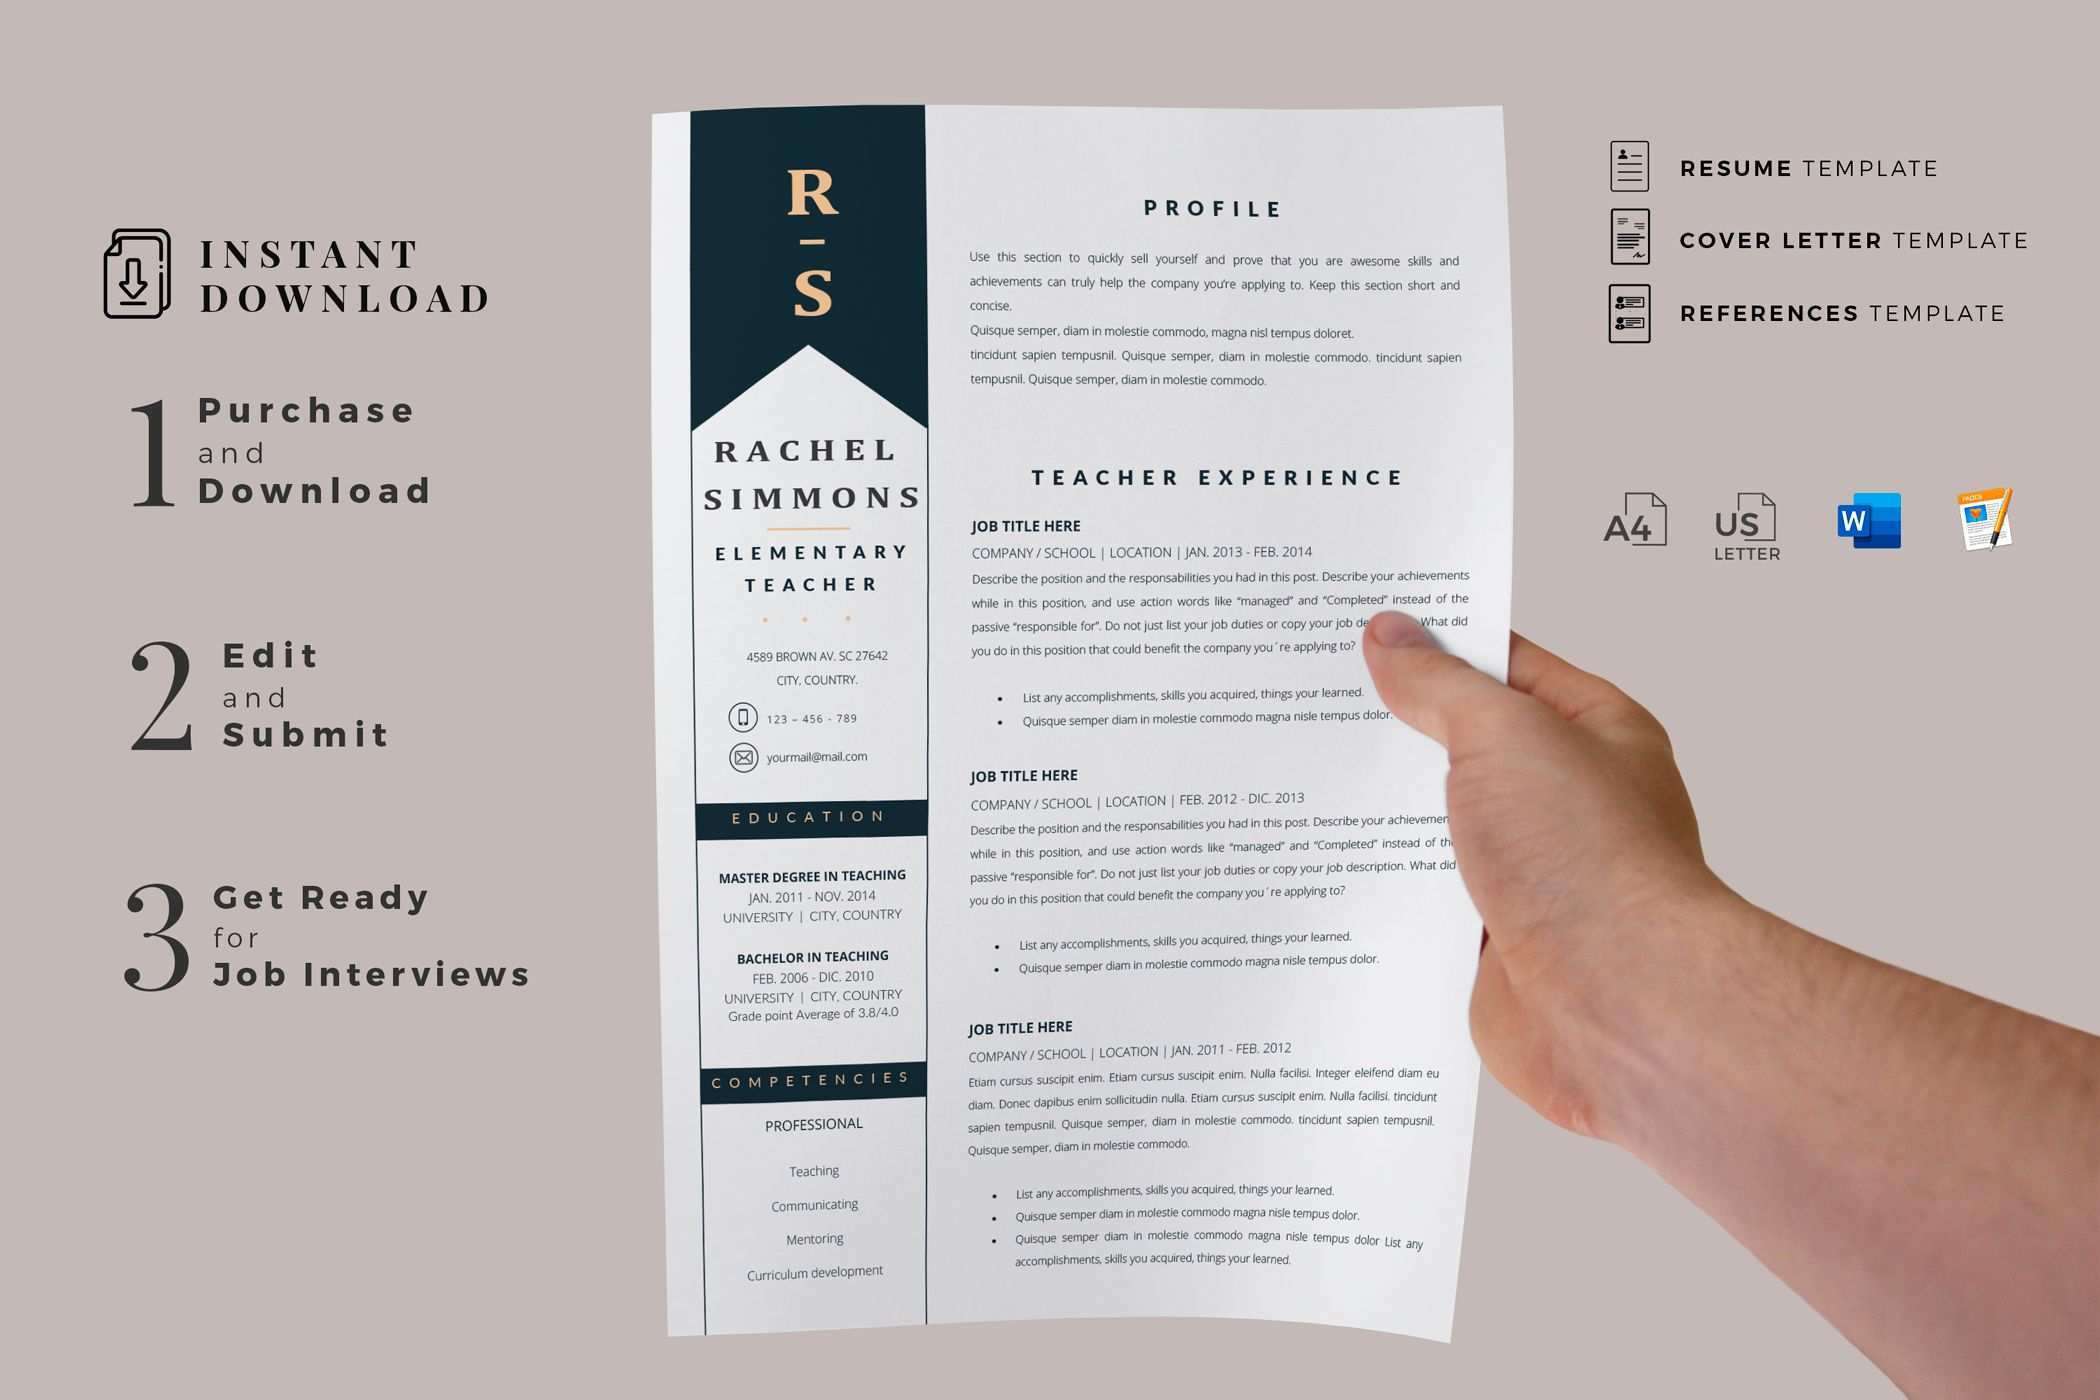 Creative Resume Templates For Ms Word And Mac Pages Professional Resume Templates And Matching Cover Le In 2020 Teacher Resume Template Resume Template Teacher Resume